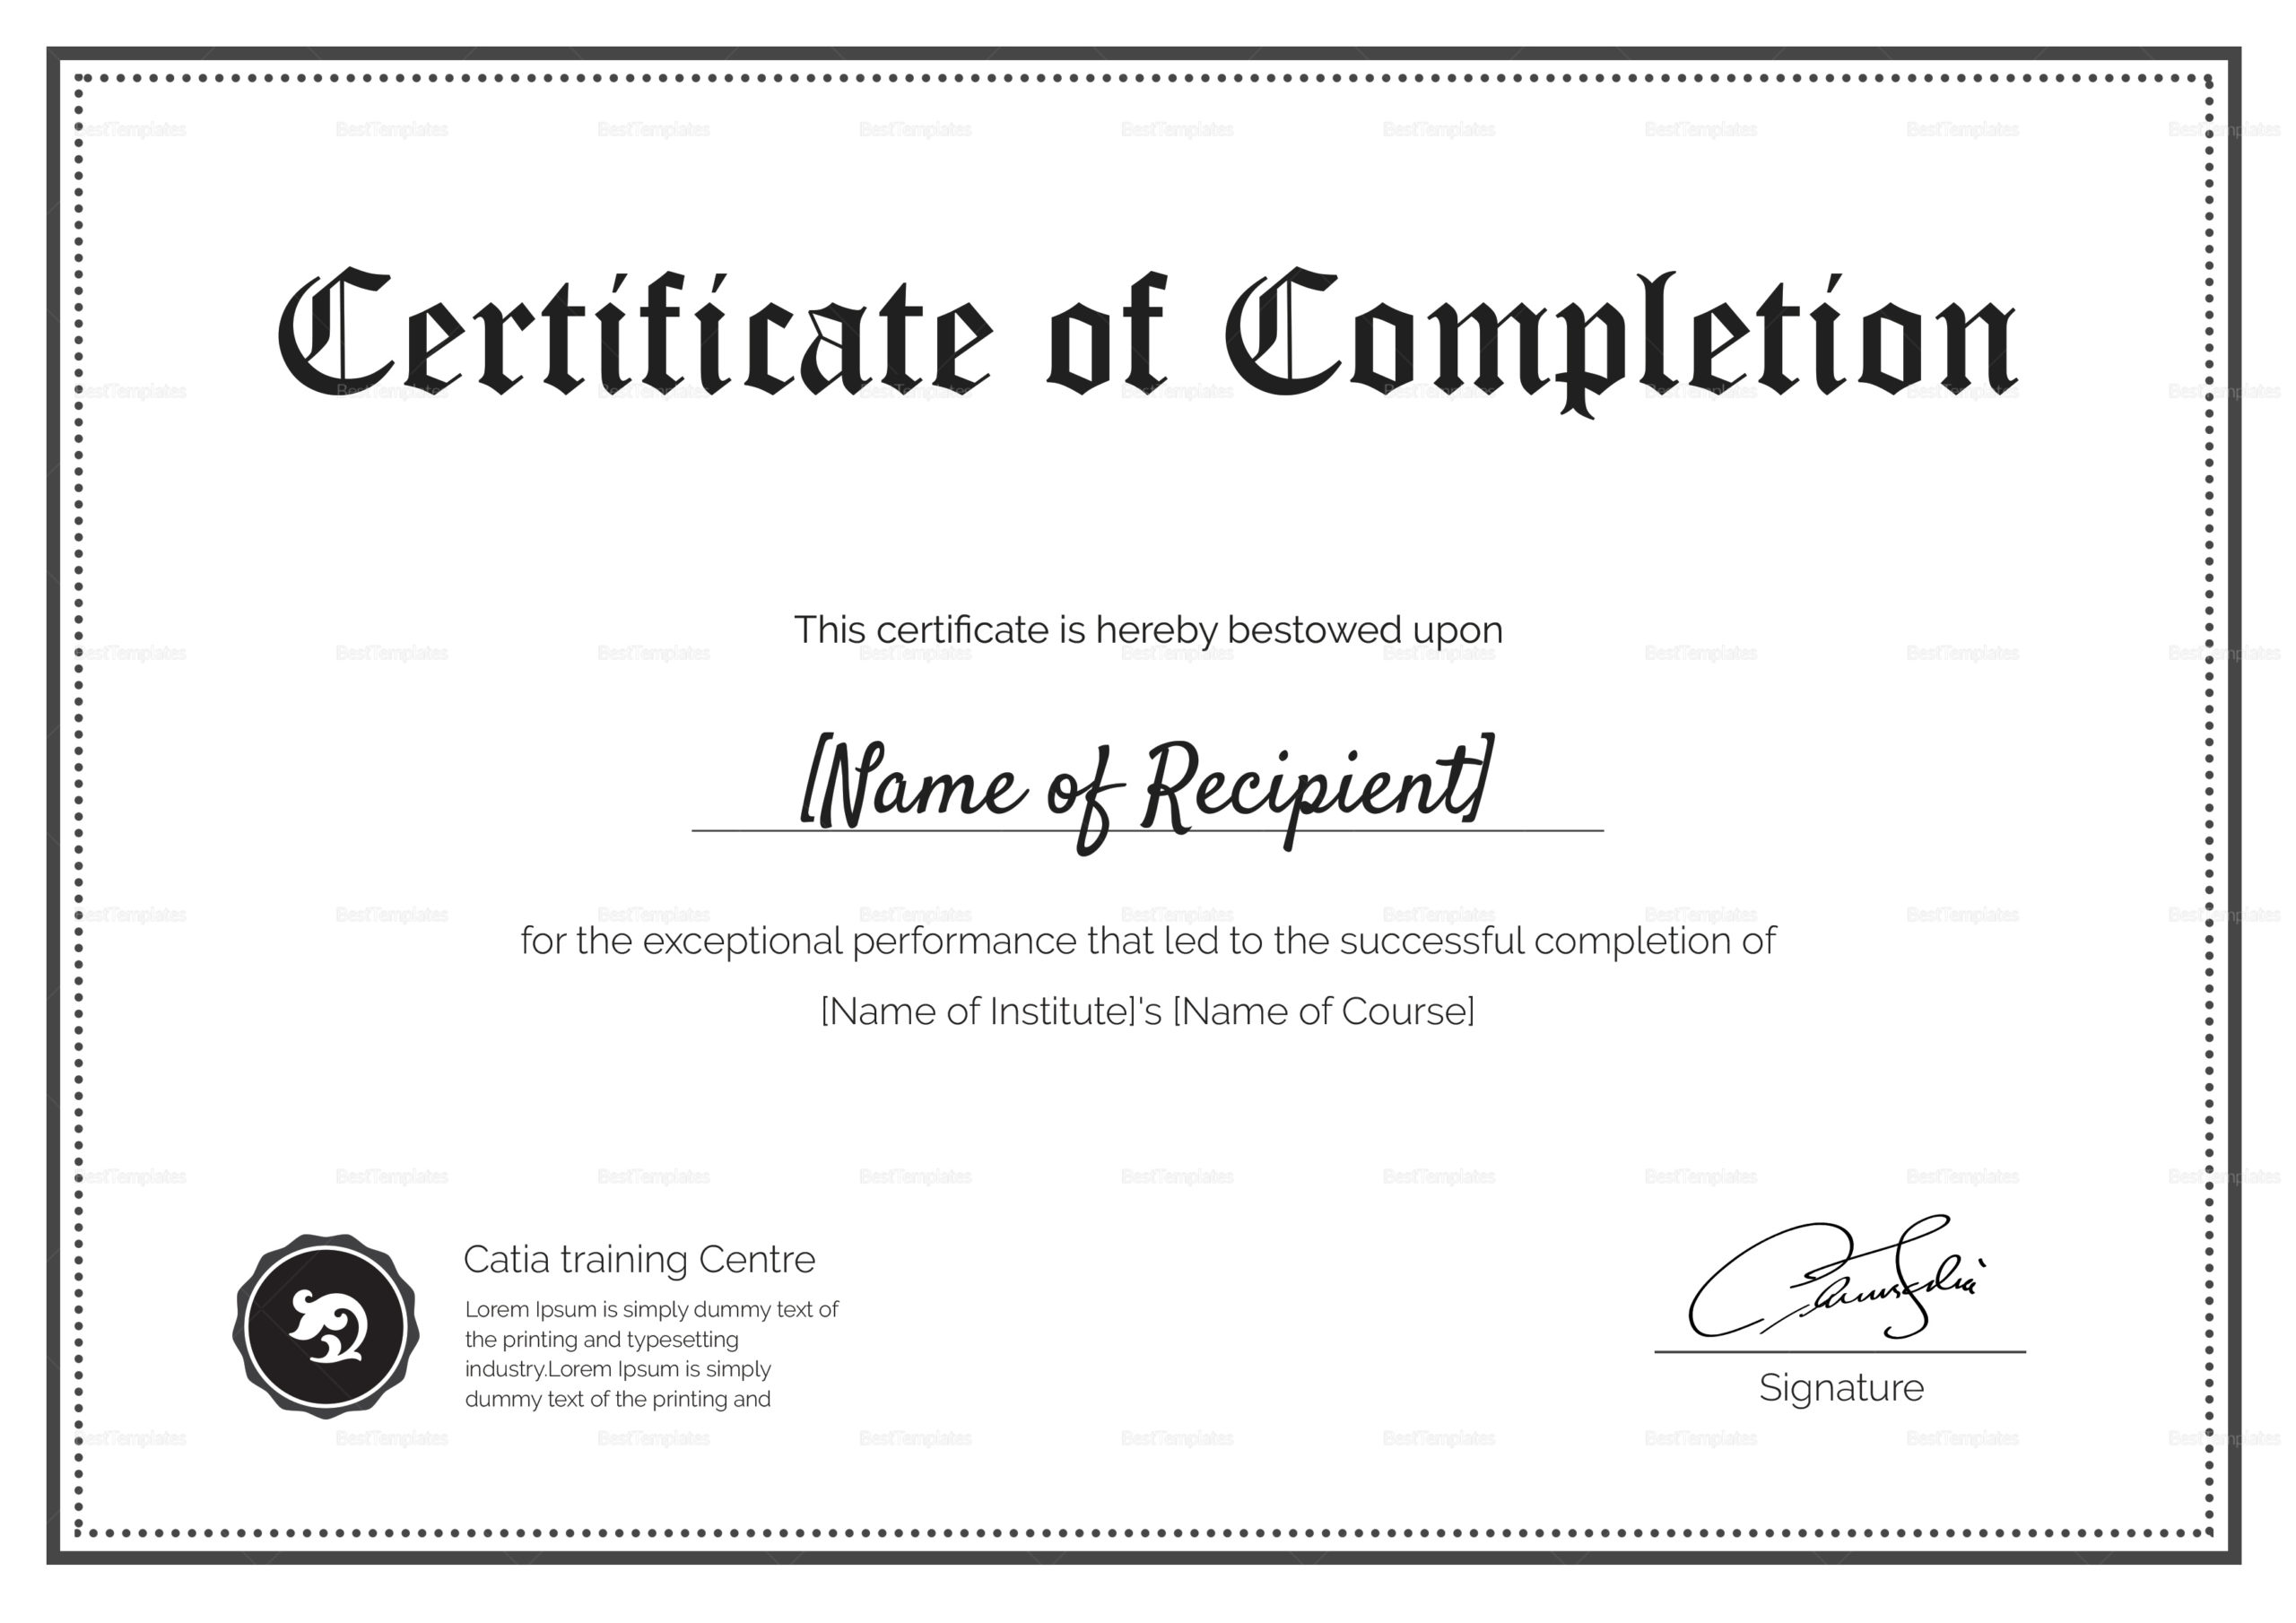 Blank Completion Certificate Design Template In Psd Word within Best Certificate Template For Project Completion